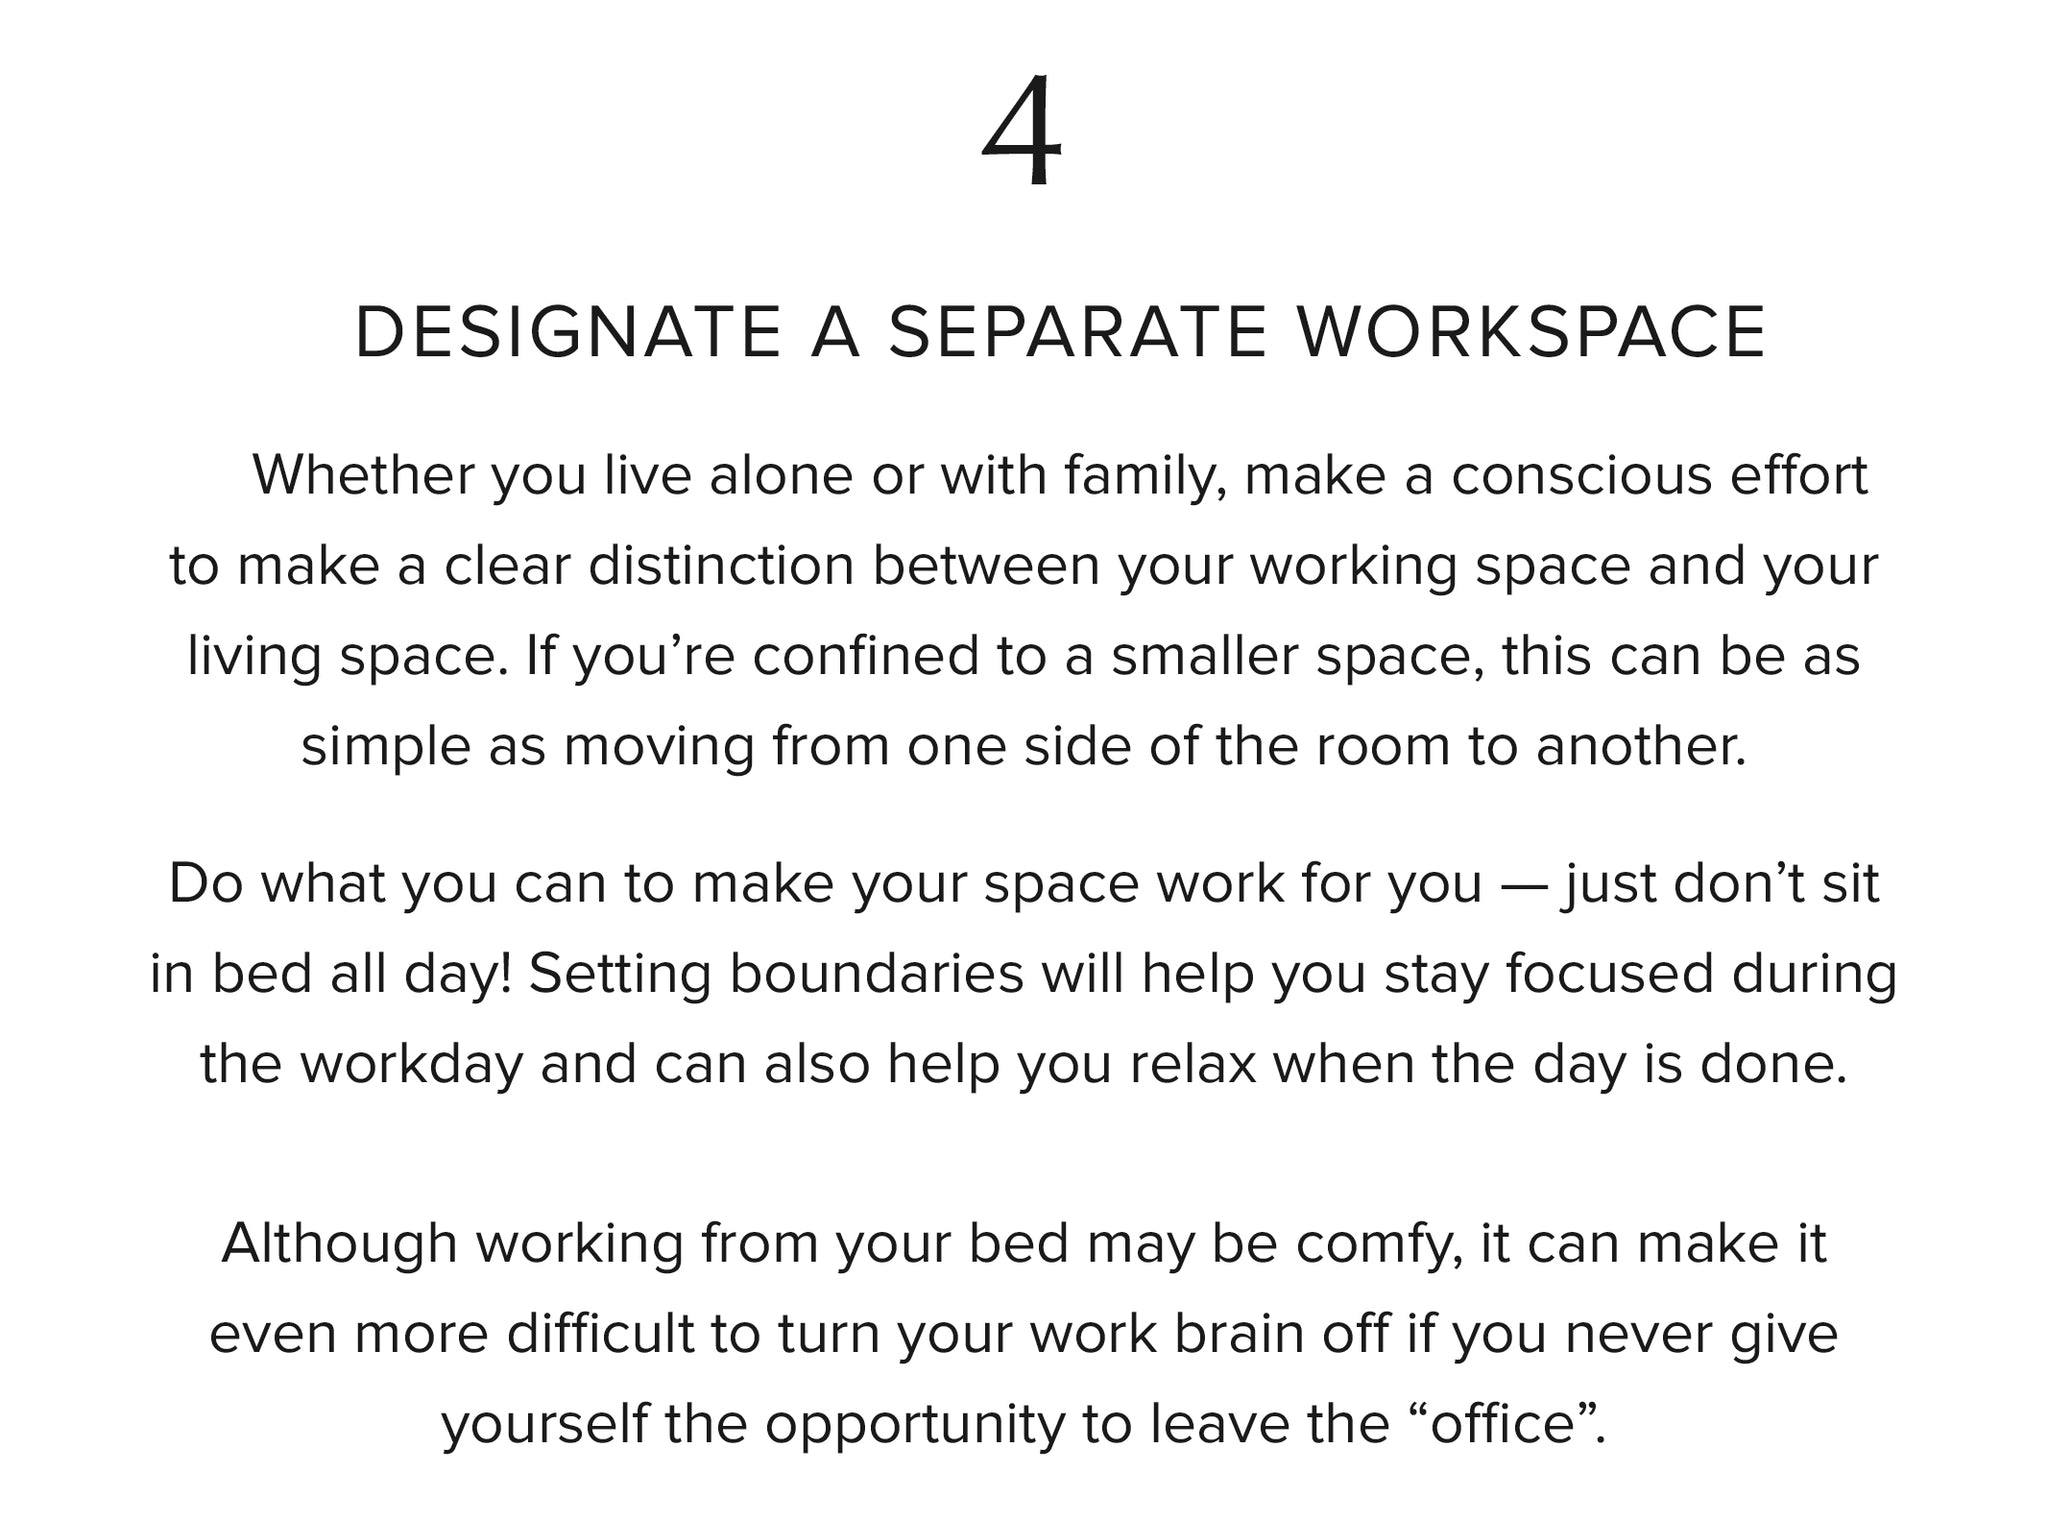 4. Designate a separate workspace